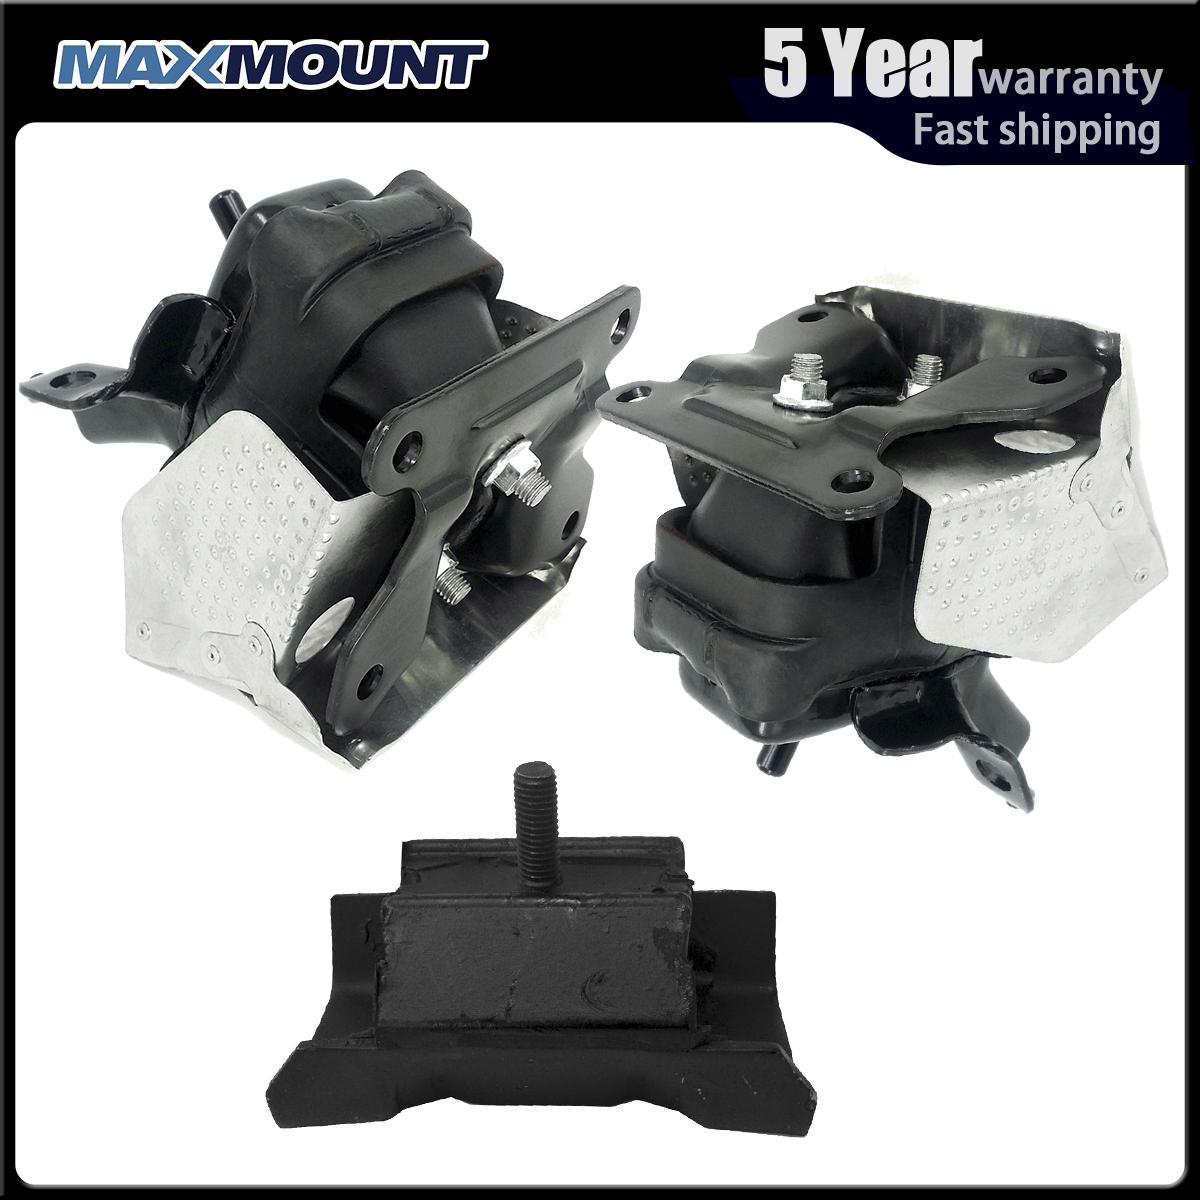 3x For 2007-2011 GMC Yukon Denali XL 1500 5.3L RWD Engine